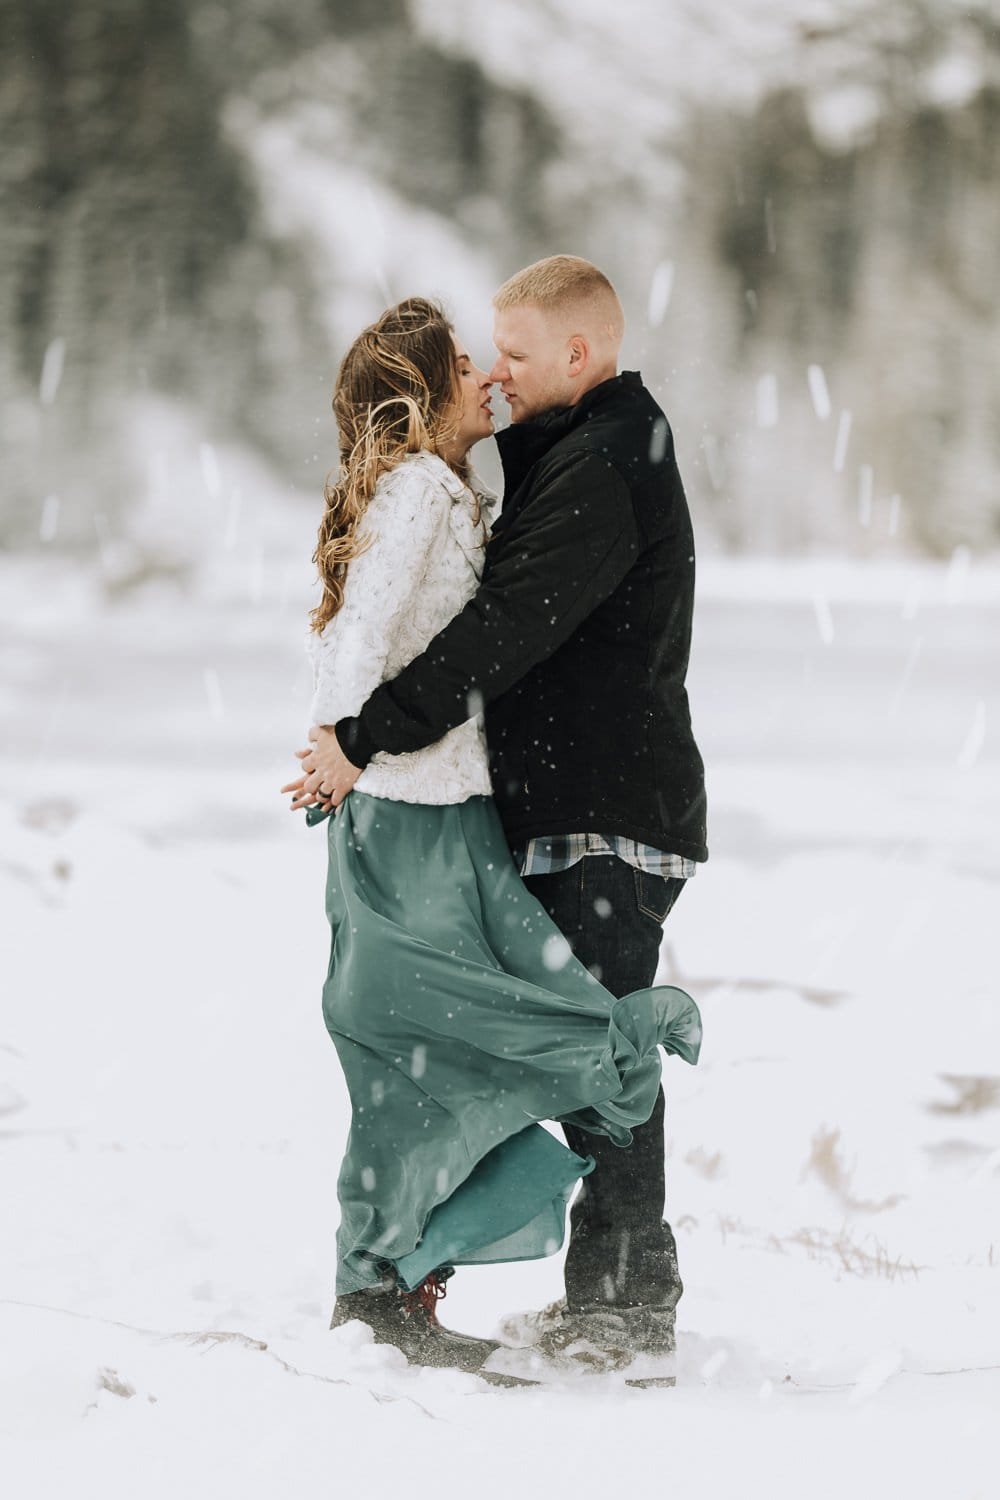 ROCKY MOUNTAIN WINTER ELOPEMENT| |DREAM LAKE ELOPEMENT| WHITNEY + JONATHAN |JUSTYNA E BUTLER PHOTOGRAPHY | ROCKY MOUNTAIN NATIONAL PARK ELOPEMENT | COLORADO MOUNTAIN ADVENTUROUS ELOPEMENT PHOTOGRAPHER|INTIMATE WEDDING| ADVENTURE